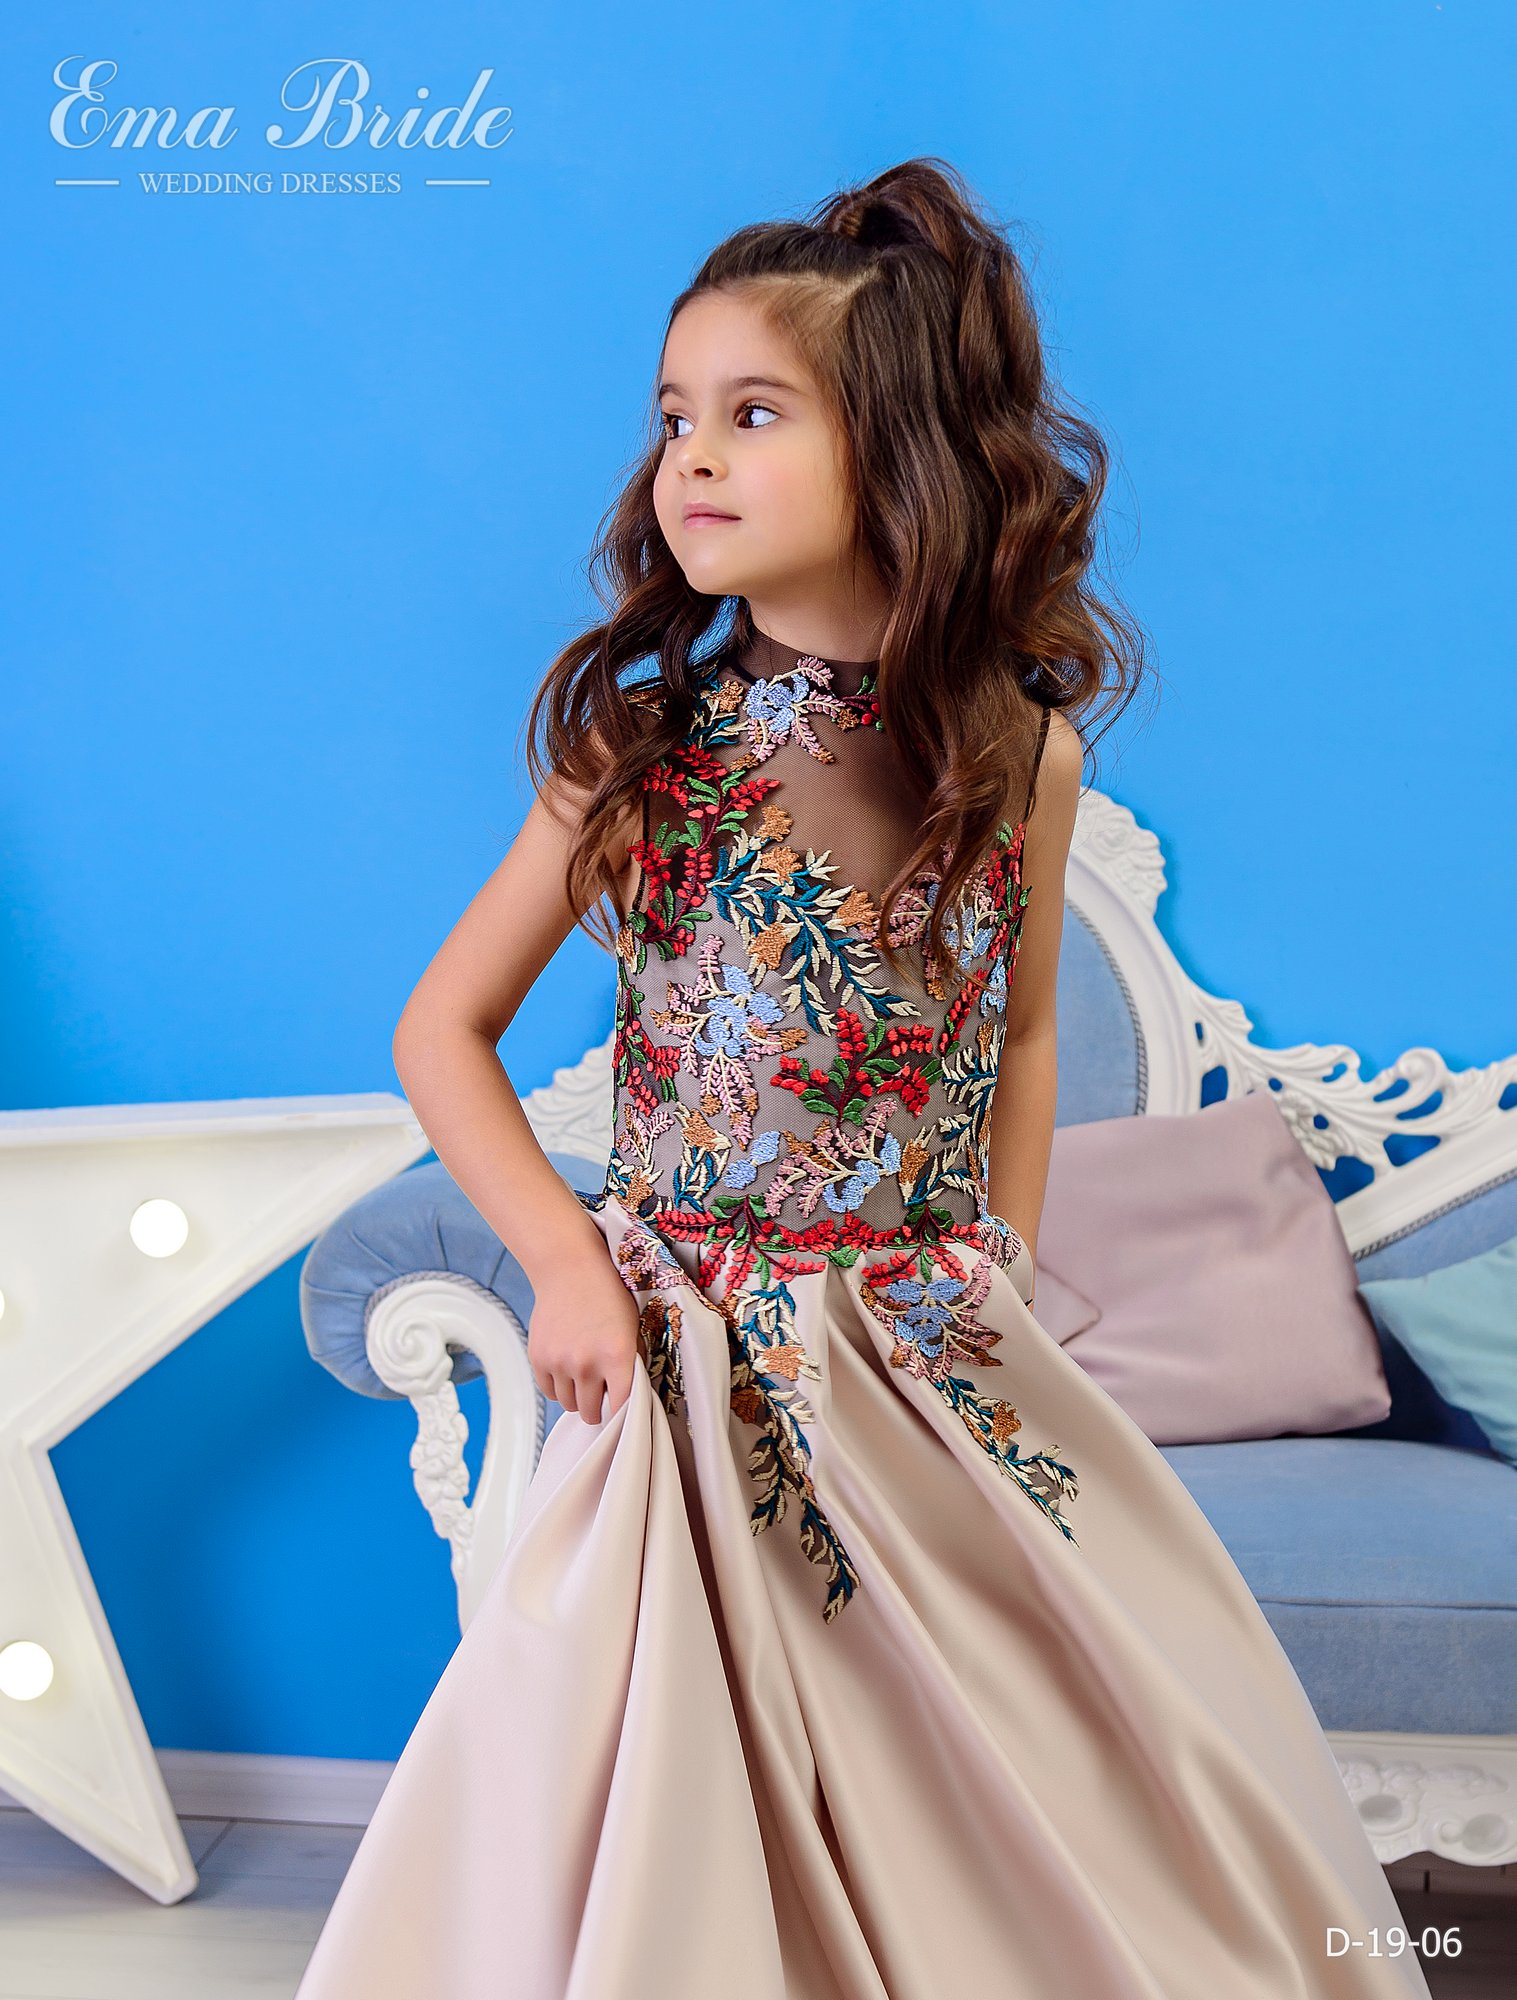 Children's dress by EmaBride D-19-06 2019-4